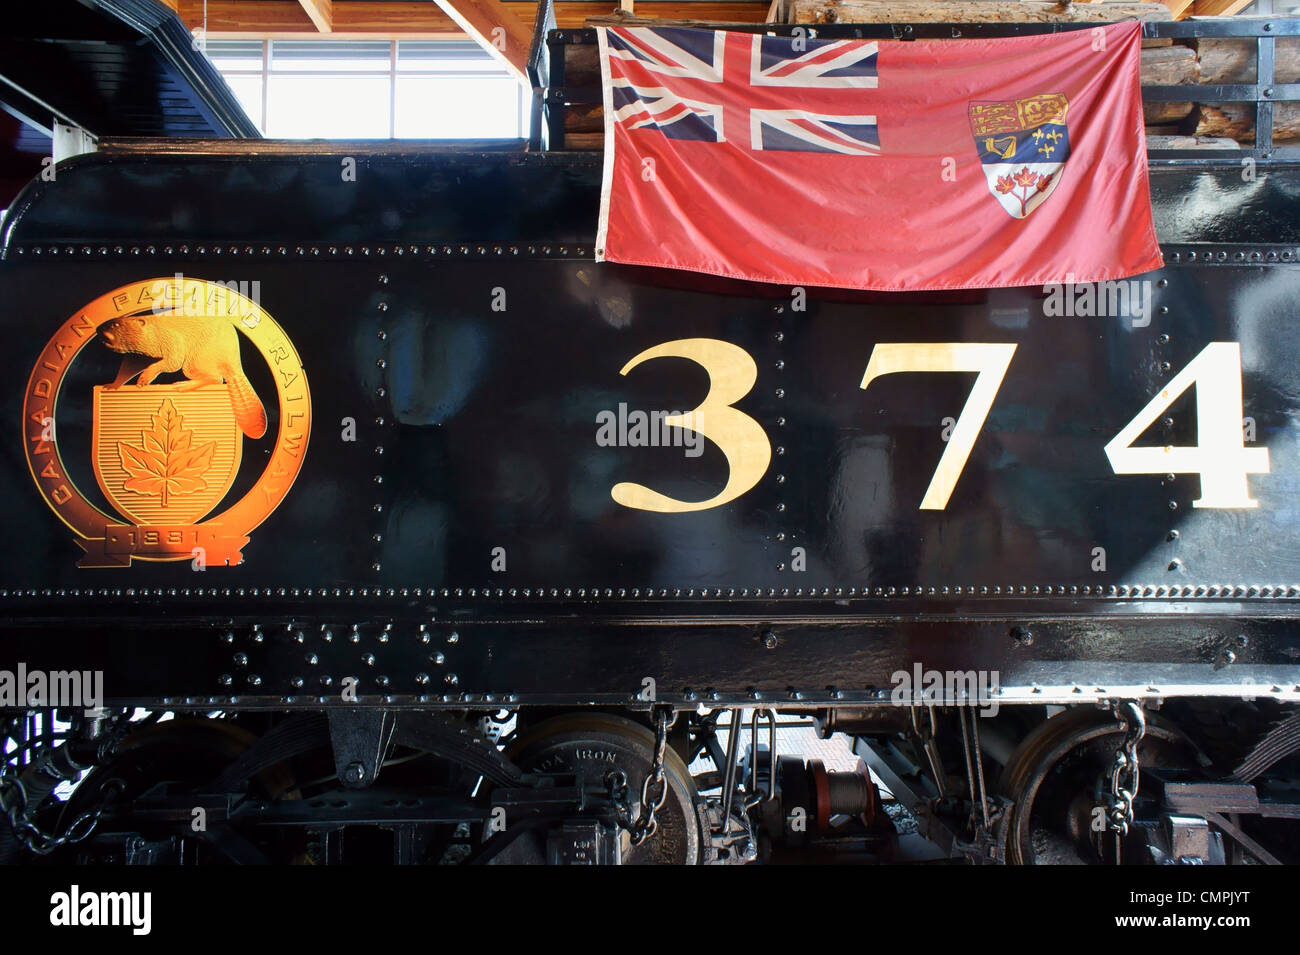 Red Ensign flag on the side of restored CPR Engine 374 at the Roundhouse in Yaletown, Vancouver, British Columbia, Stock Photo